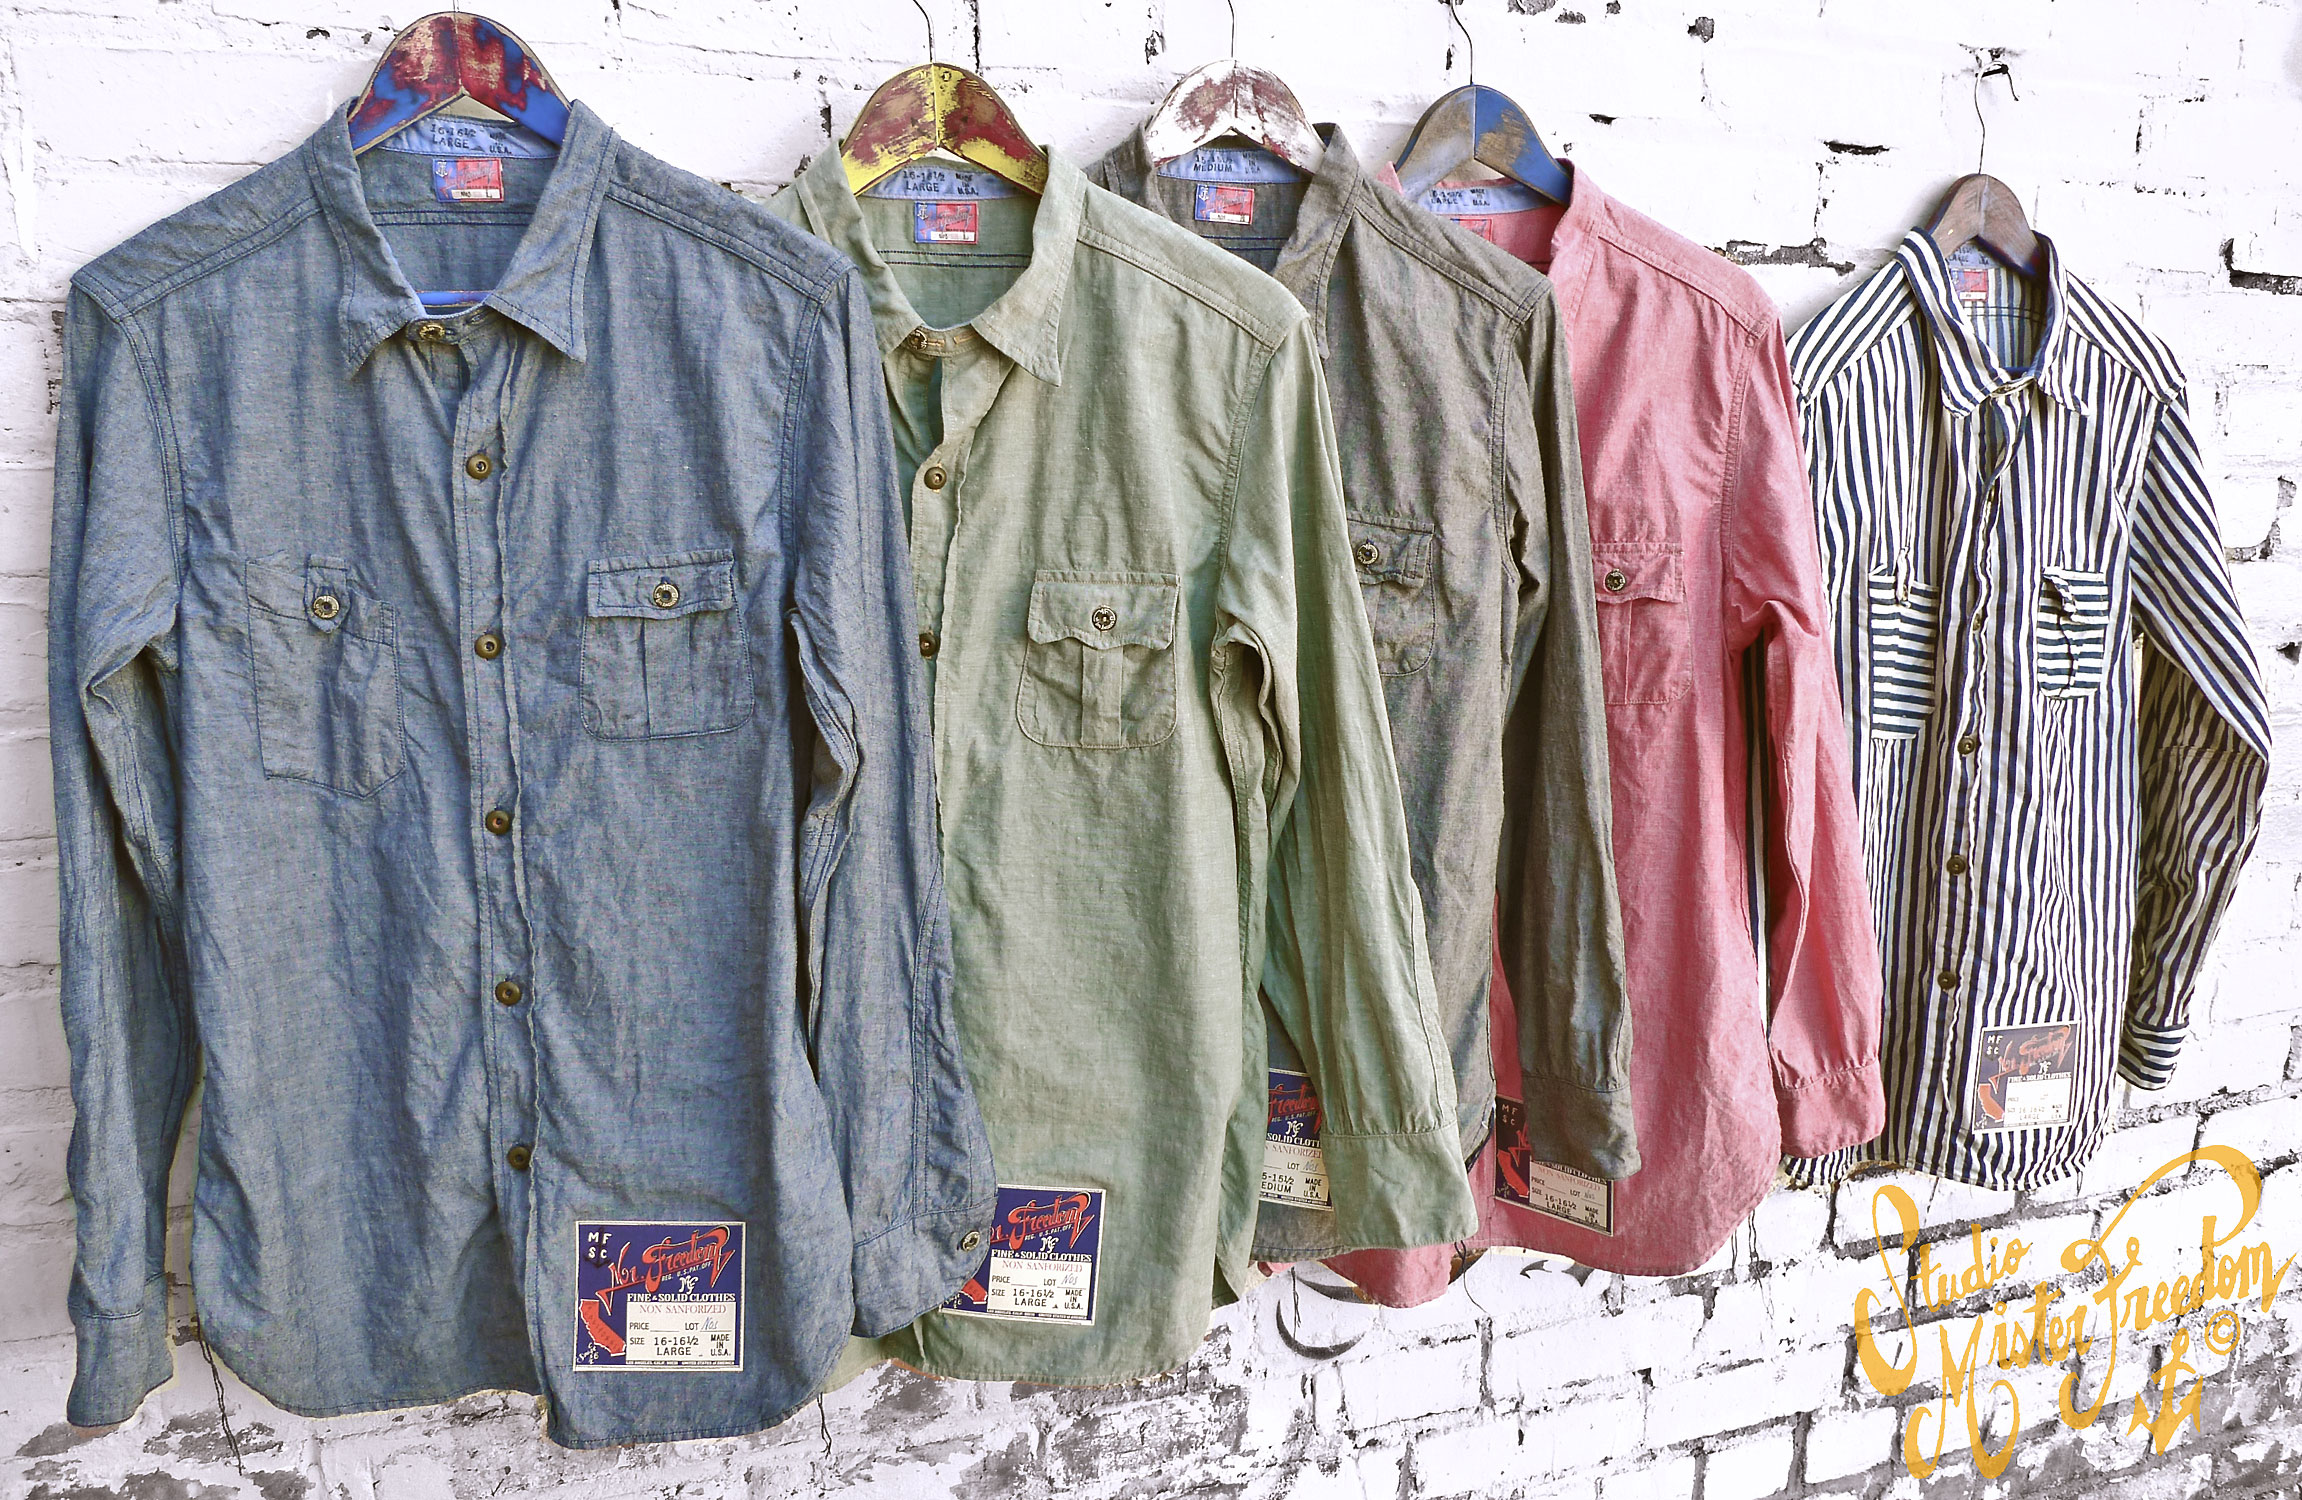 Mister Freedom NOS Chambray shirt